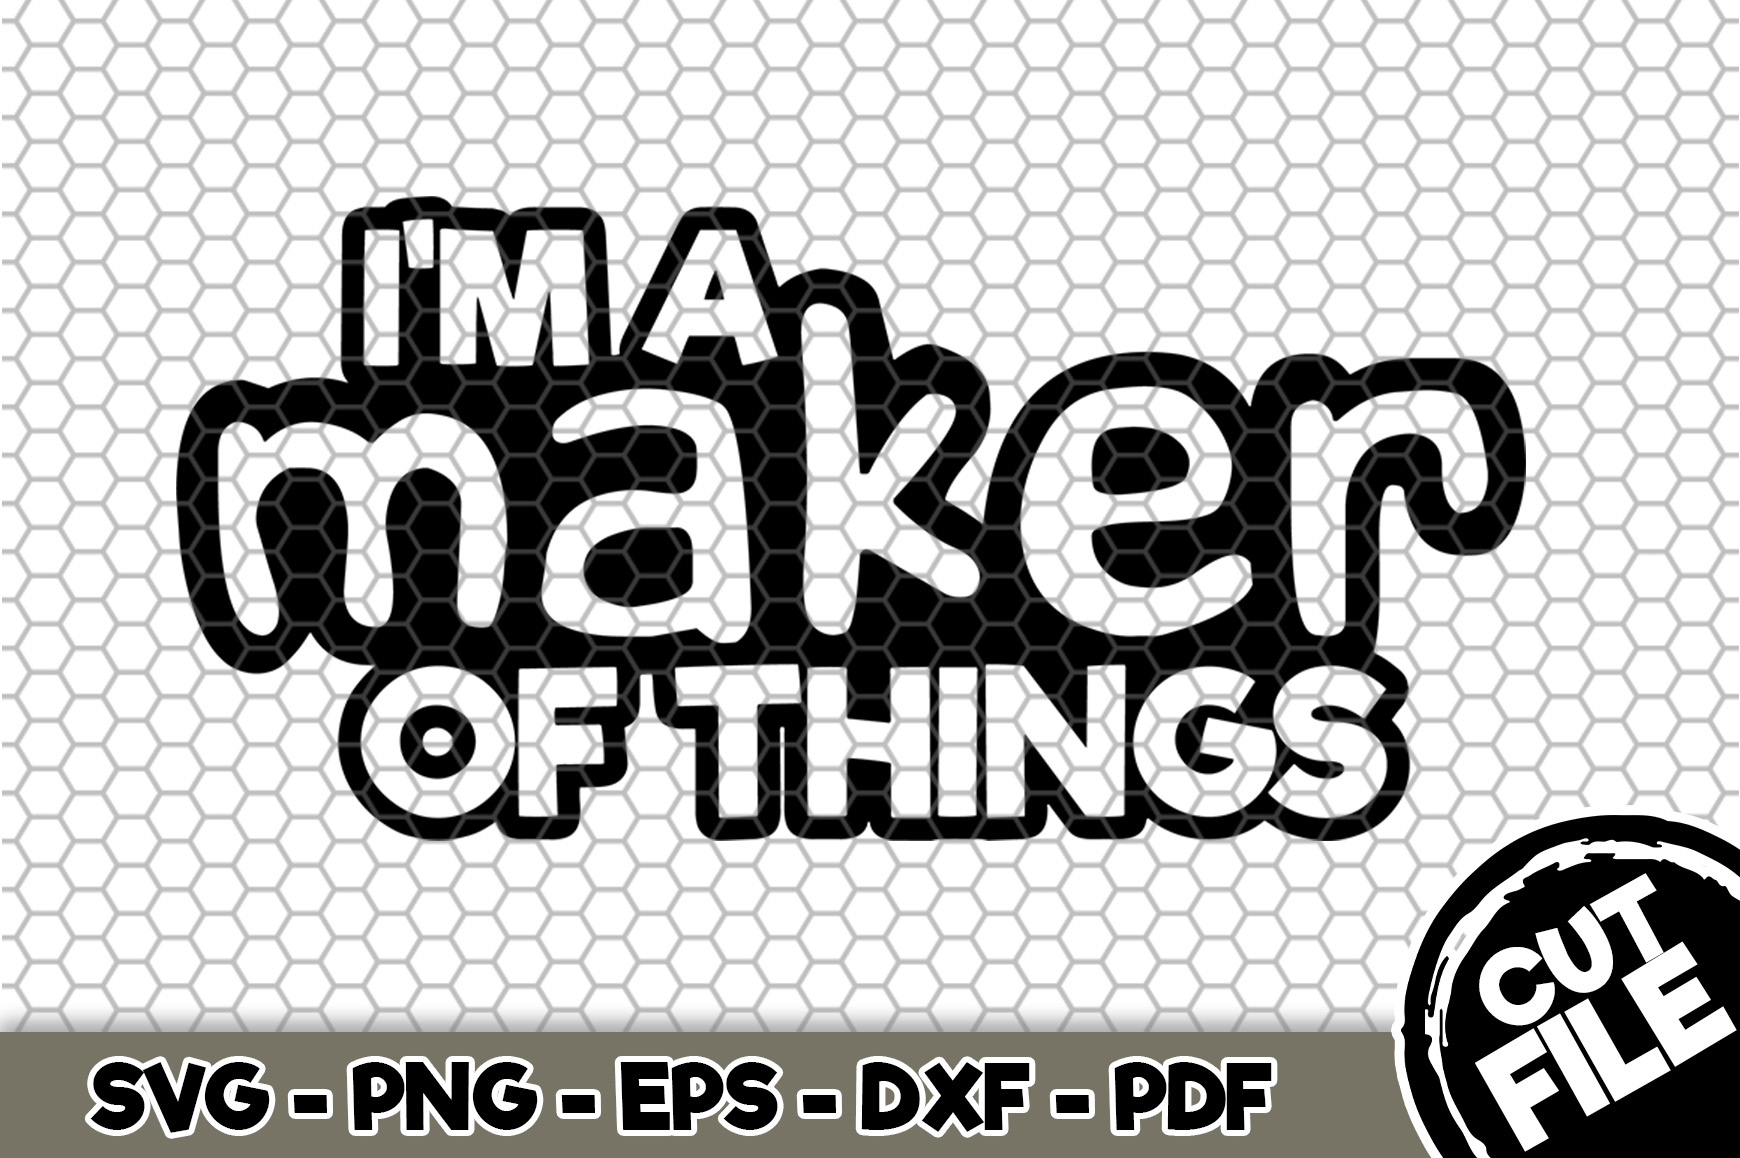 Download Free I M A Maker Of Things Graphic By Svgexpress Creative Fabrica for Cricut Explore, Silhouette and other cutting machines.